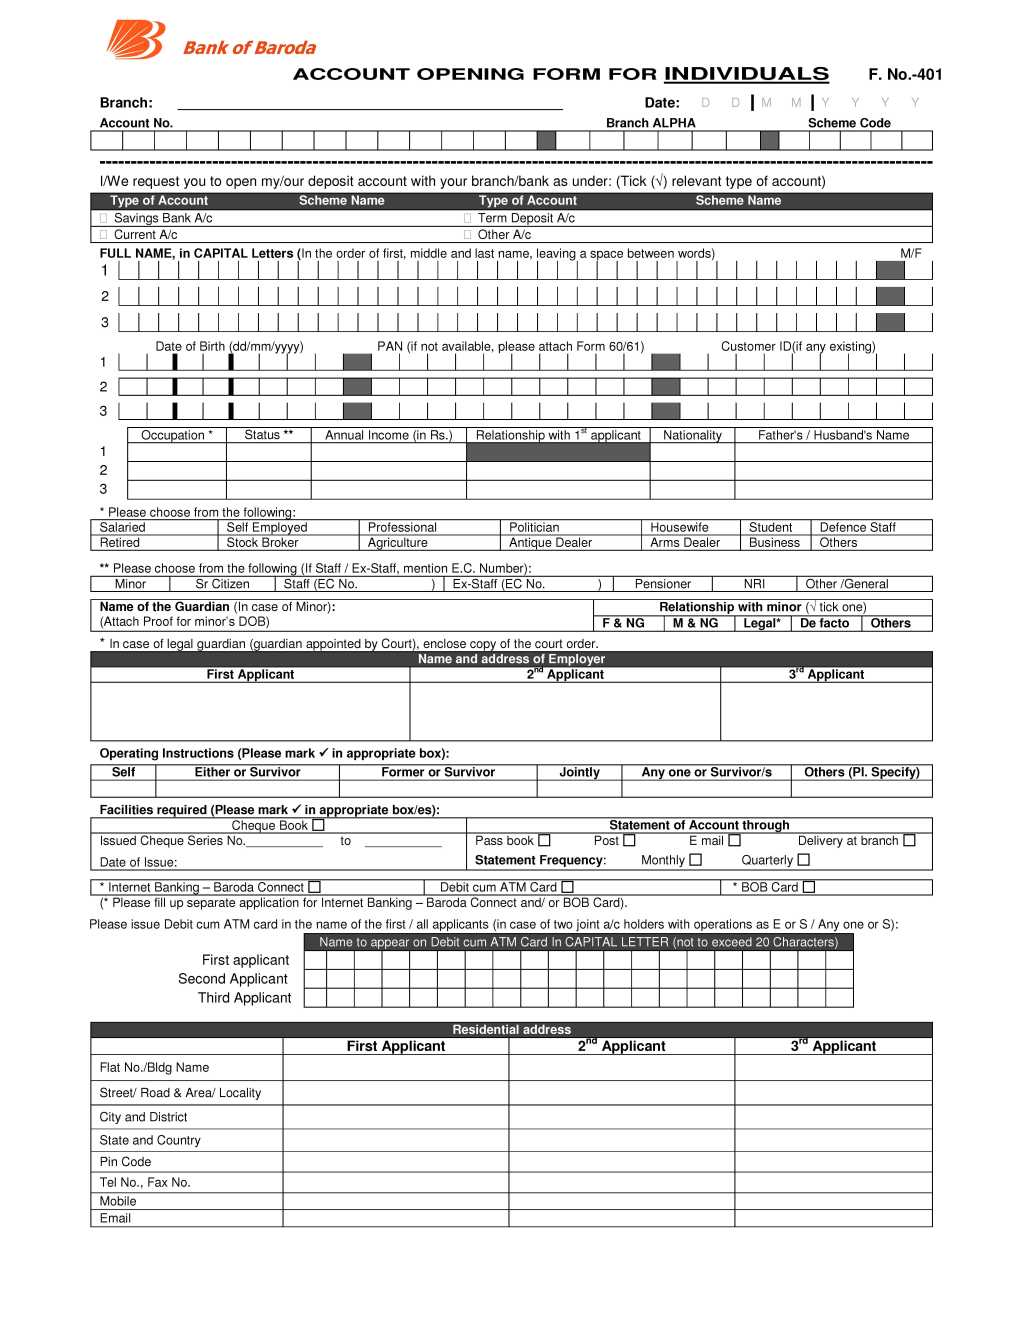 Bank Of Baroda Fixed Deposit Application Form PDF 2019